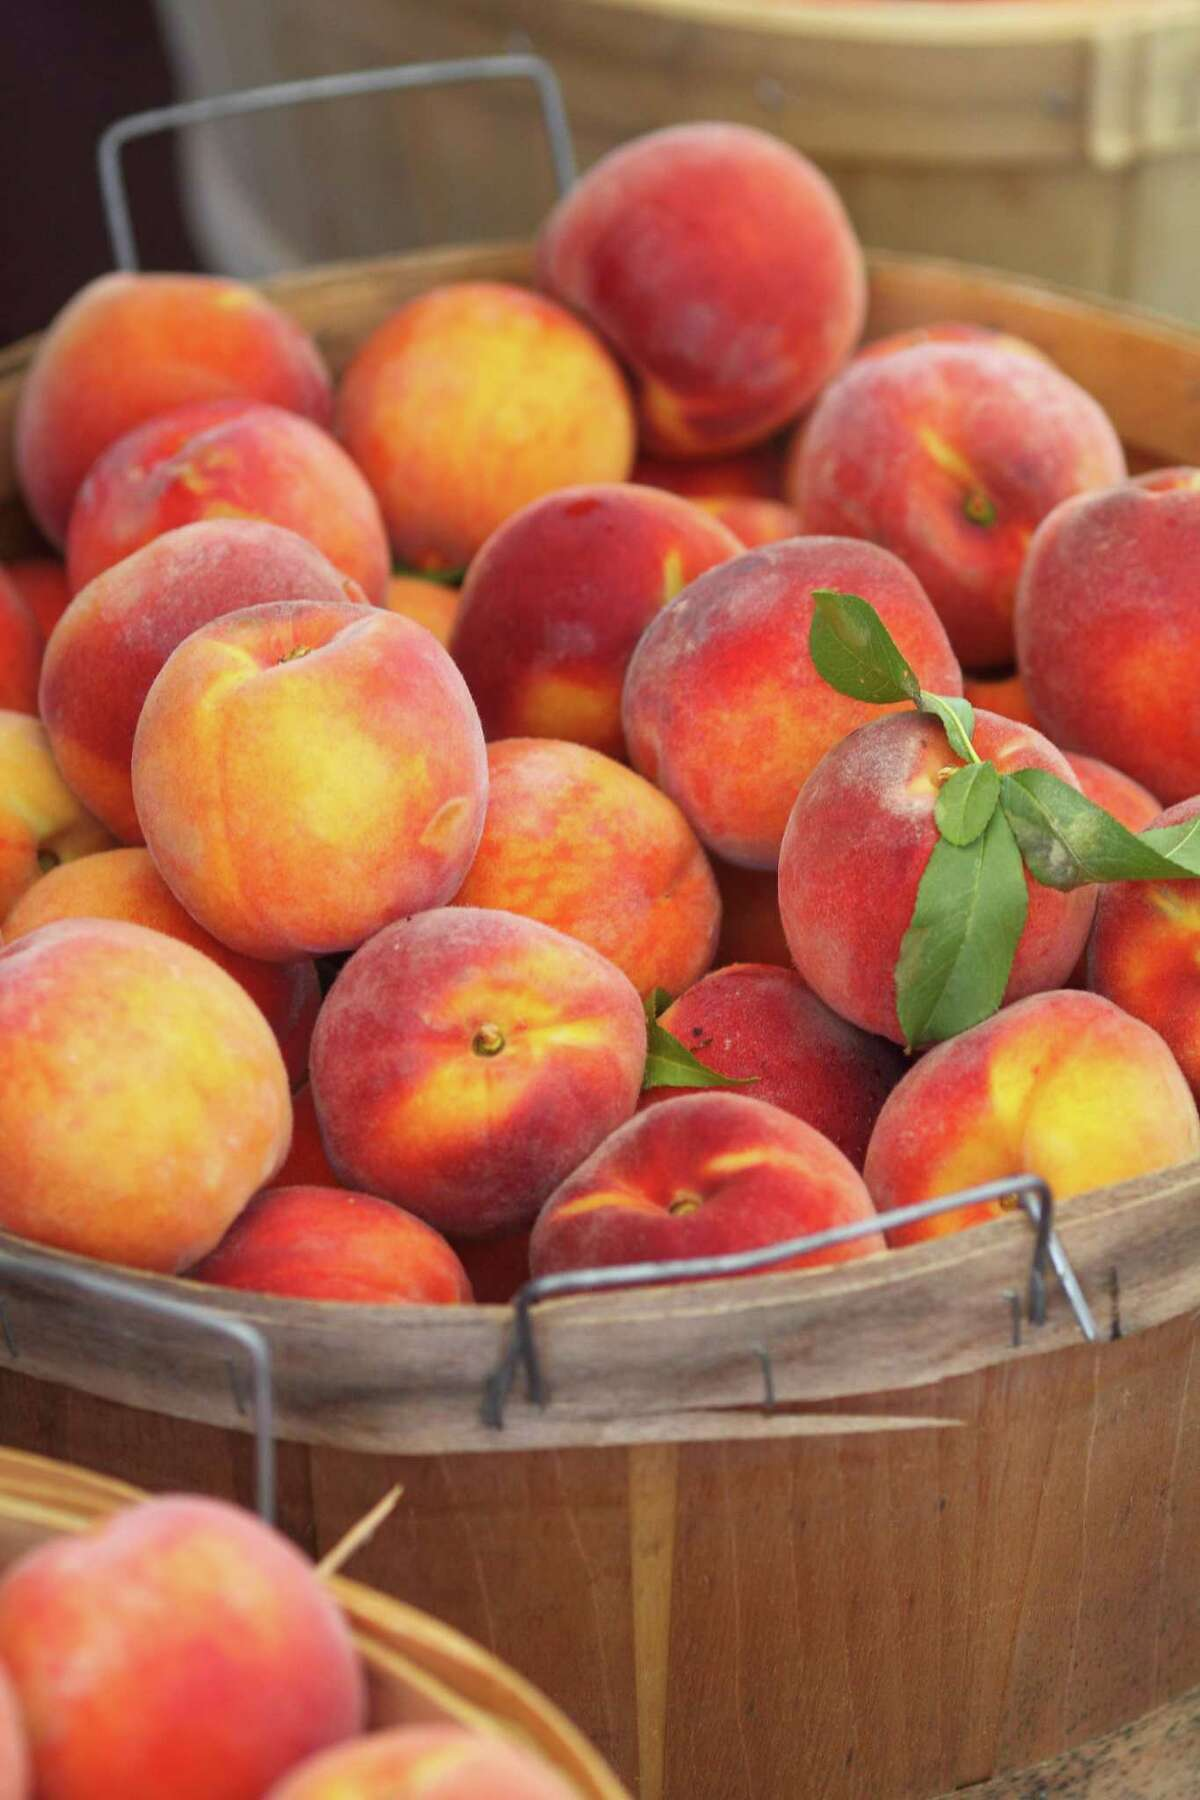 You can ripen hard peaches on the counter or in a paper bag for even faster results.